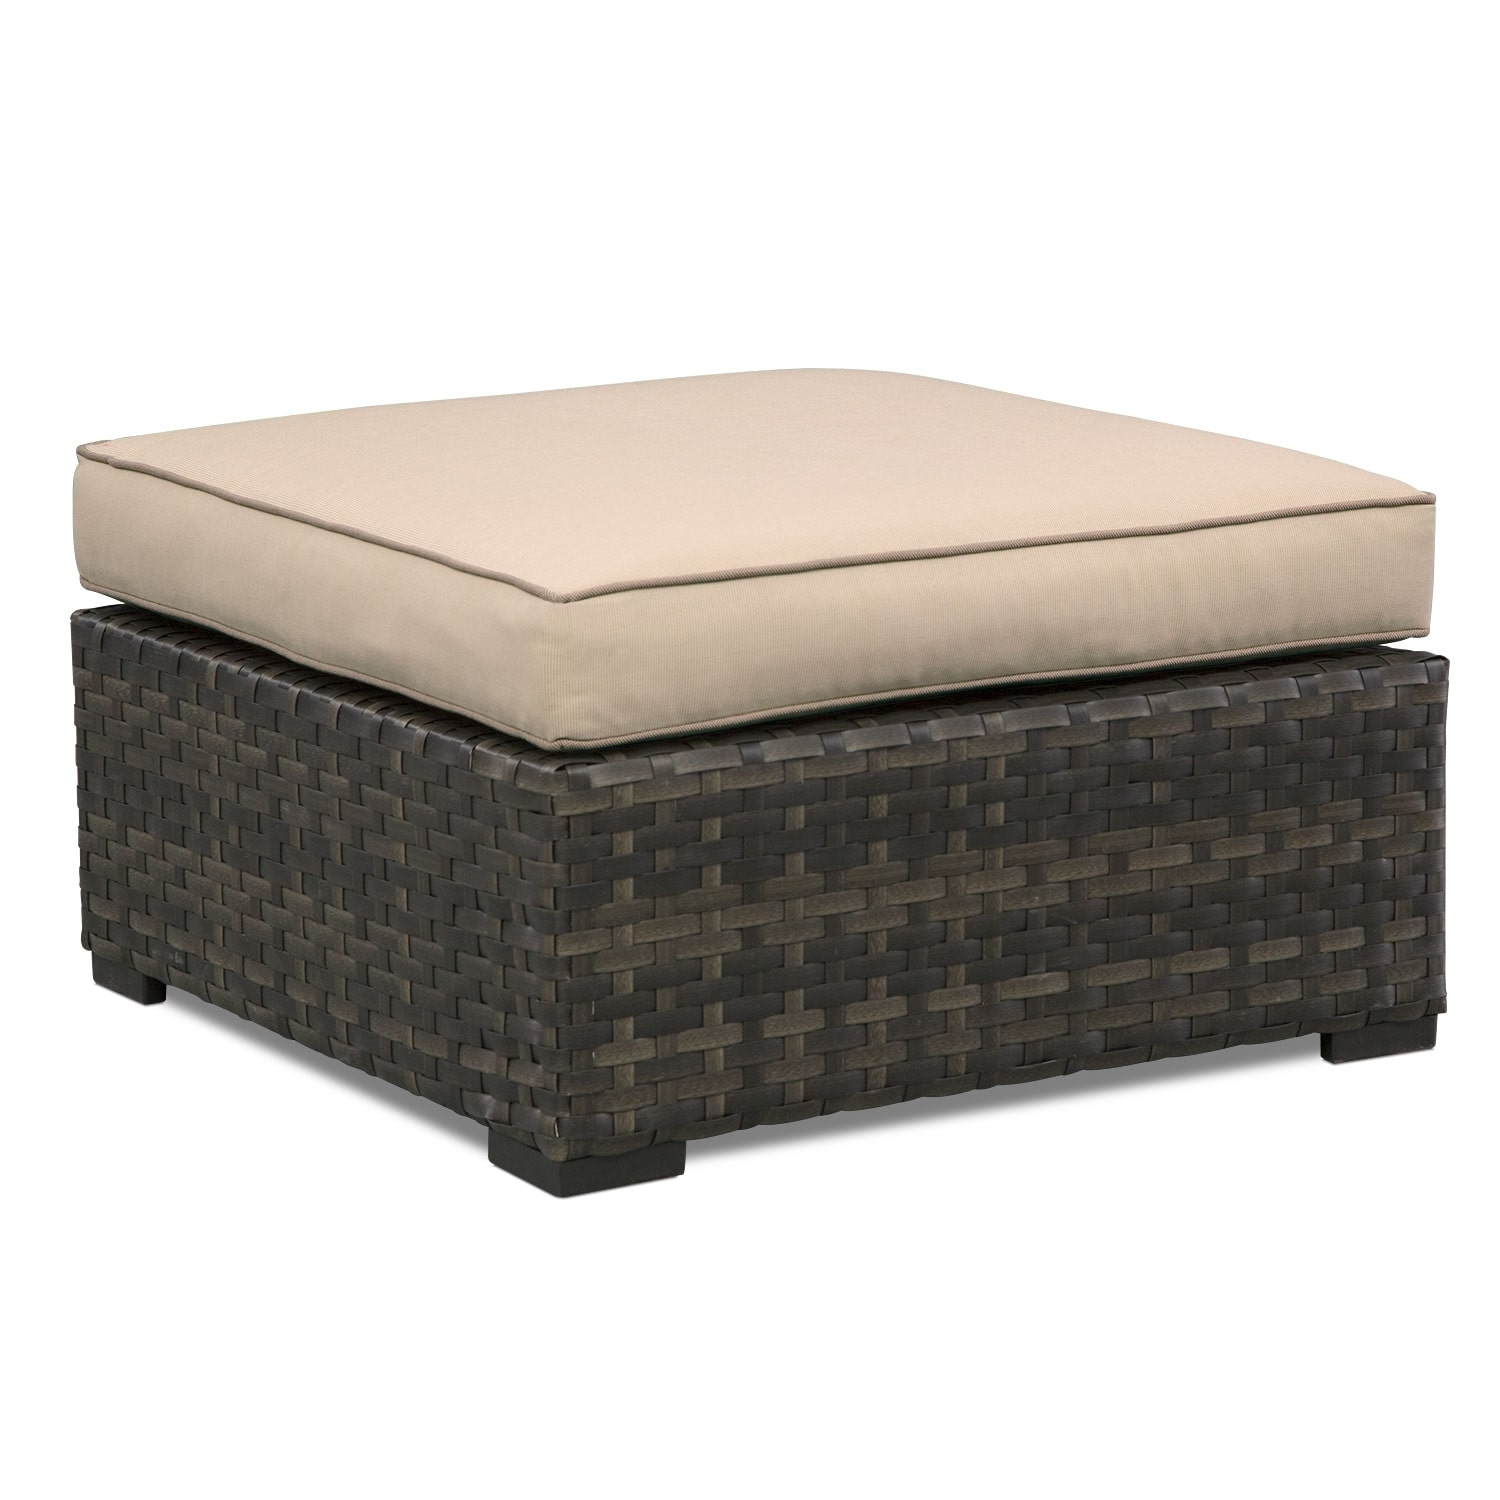 Outdoor Furniture - Regatta Outdoor Ottoman - Brown